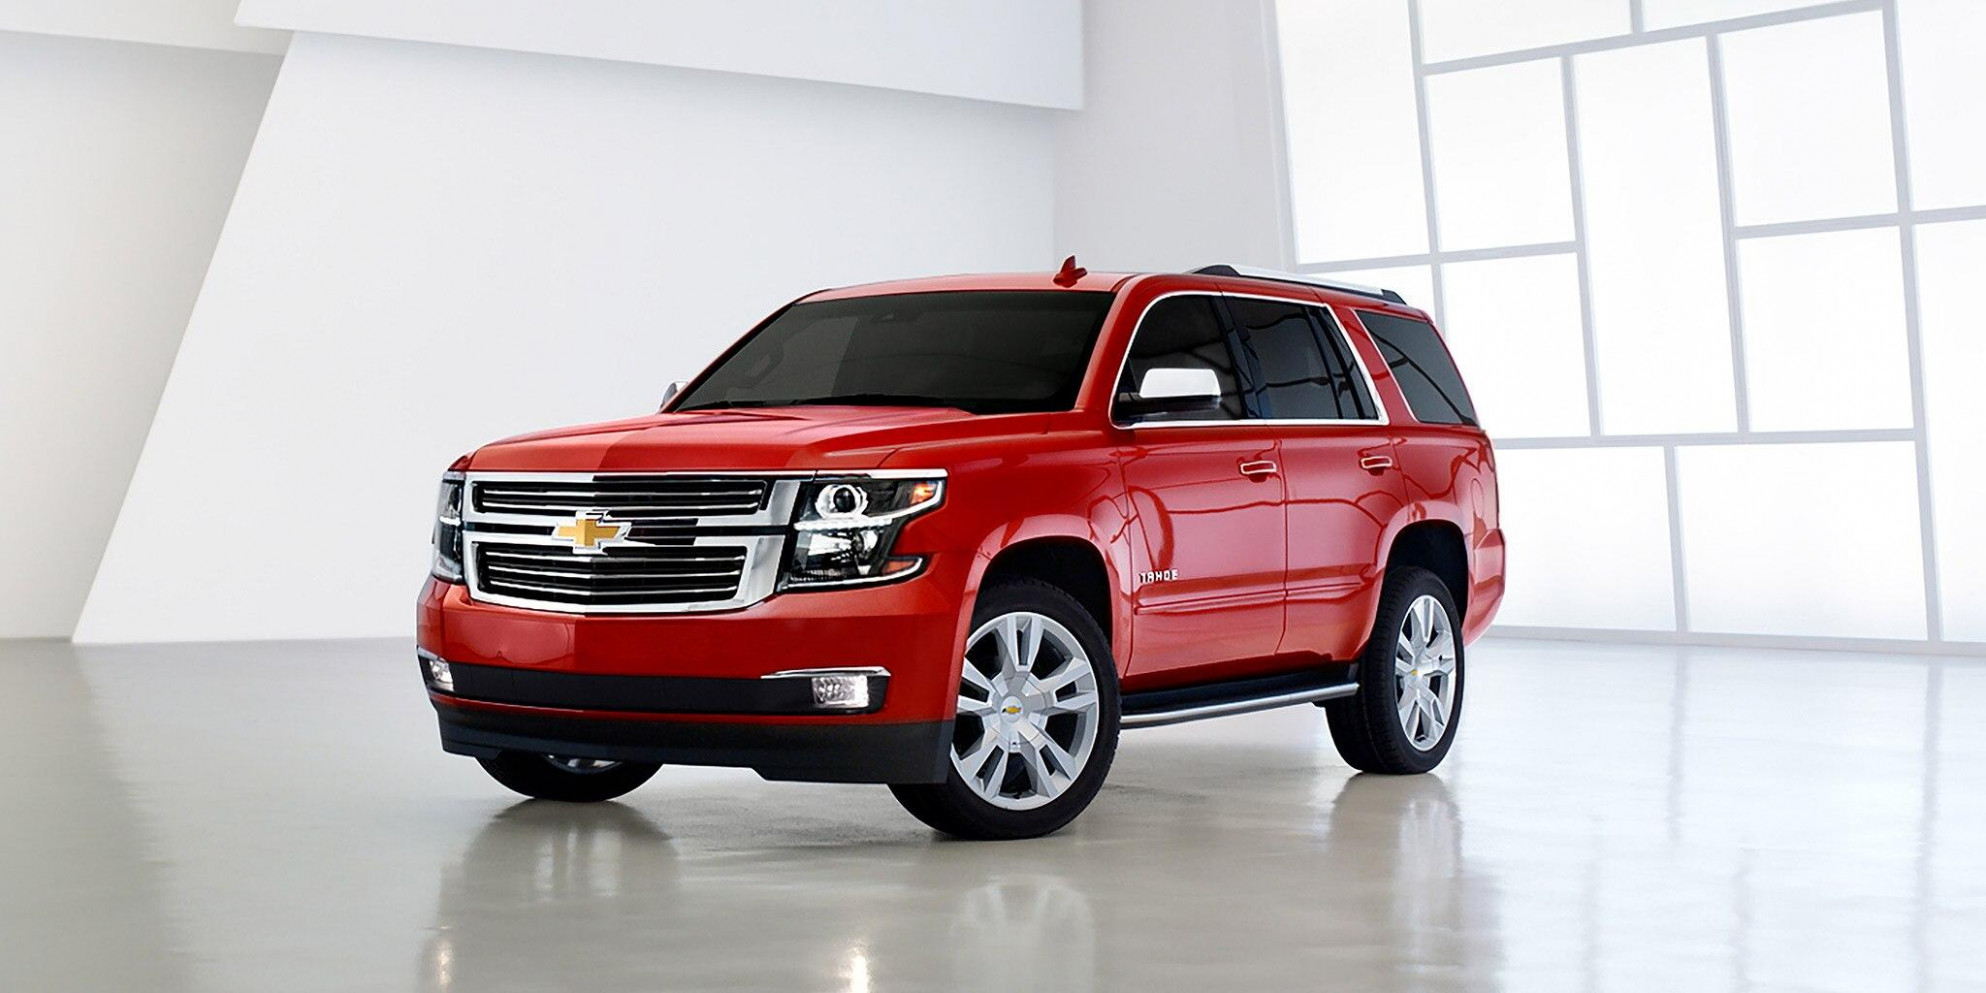 New 11 Chevrolet Tahoe | Near Dallas-Fort Worth | Jerry's Chevrolet